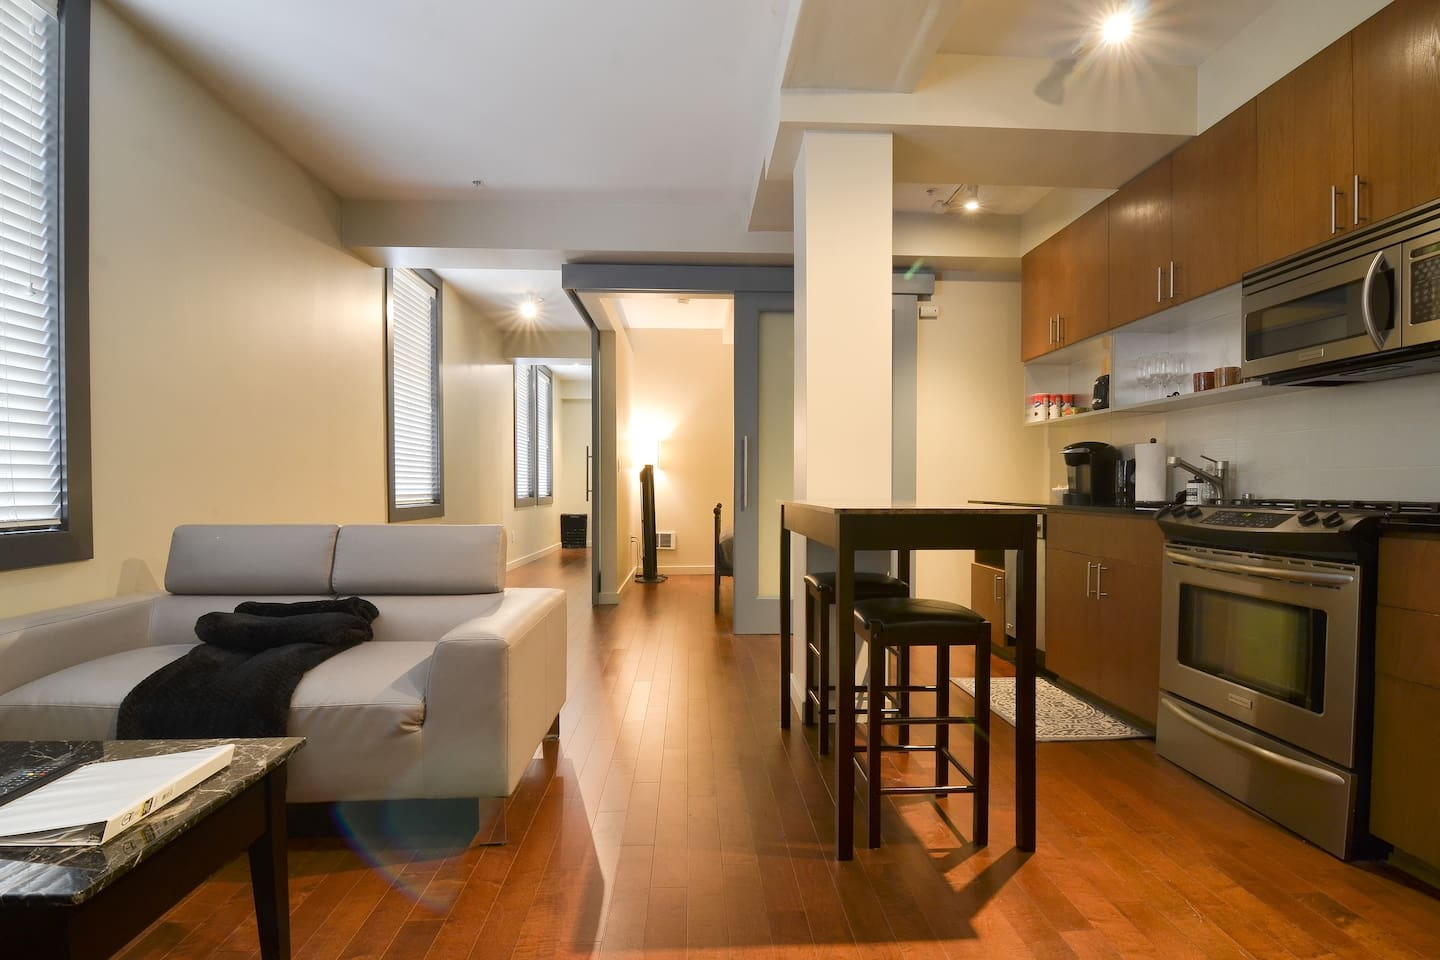 Deluxe Apartment Steps Away from Pike Place Market!